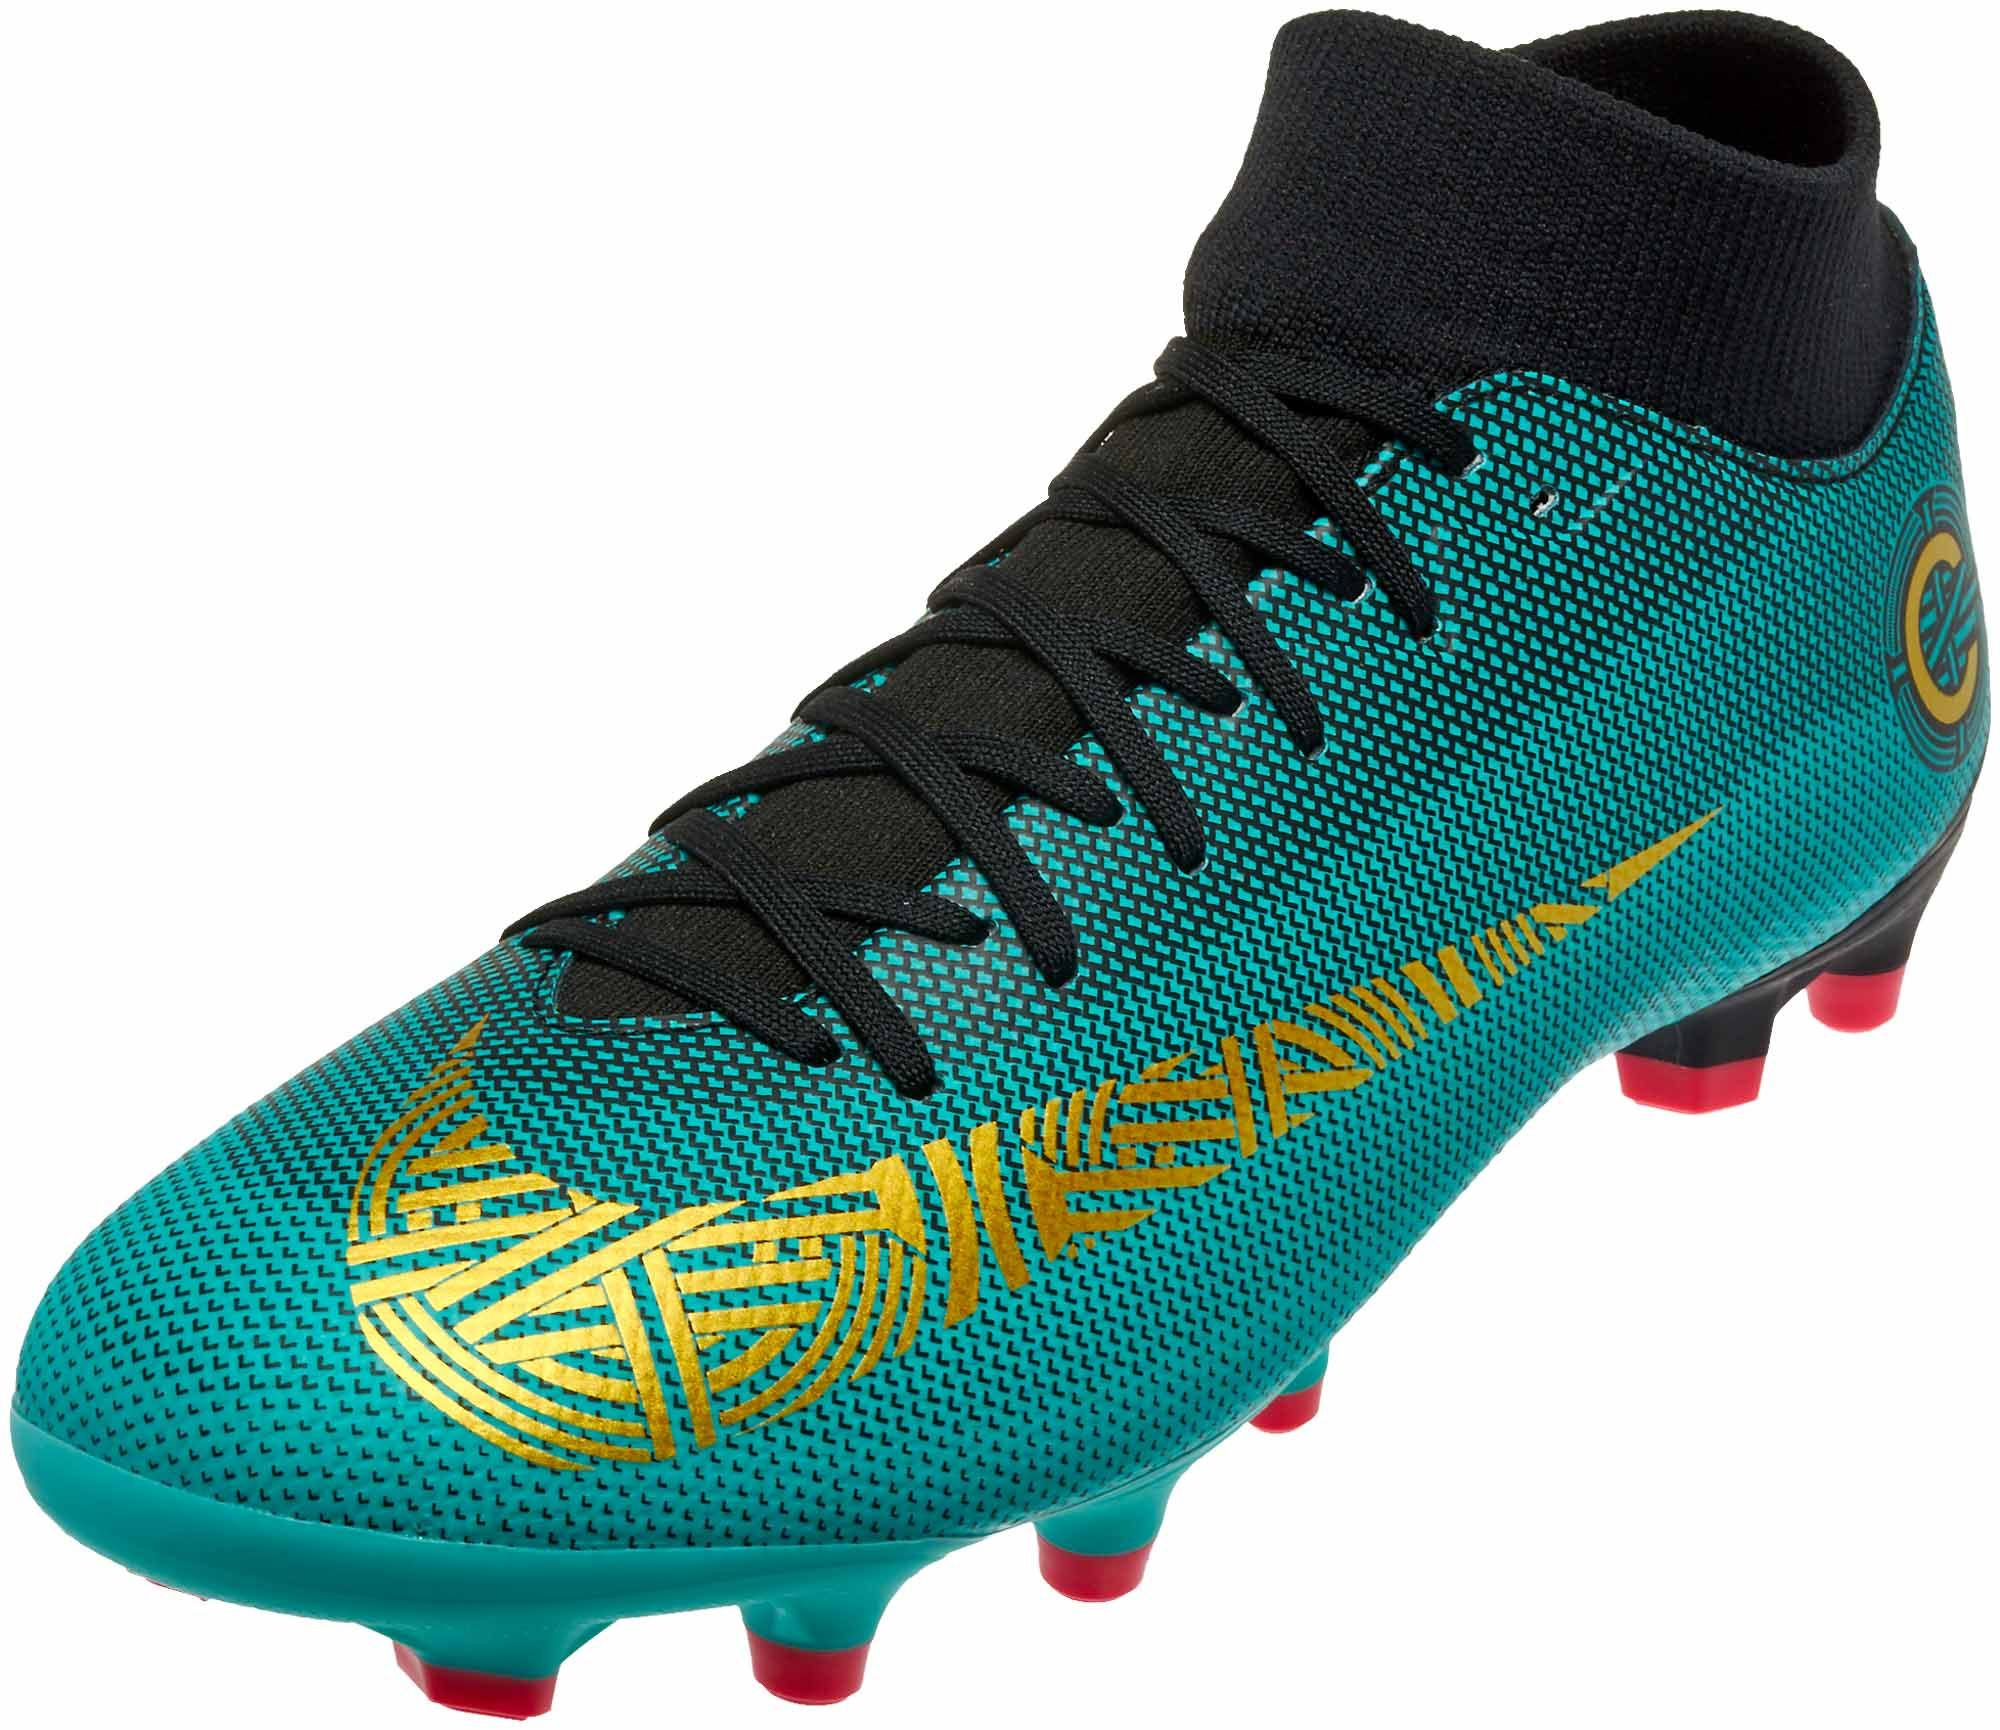 0fb86168b83dd Nike Mercurial Superfly 6 Academy Soccer Cleats. Get a pair from SoccerPro.